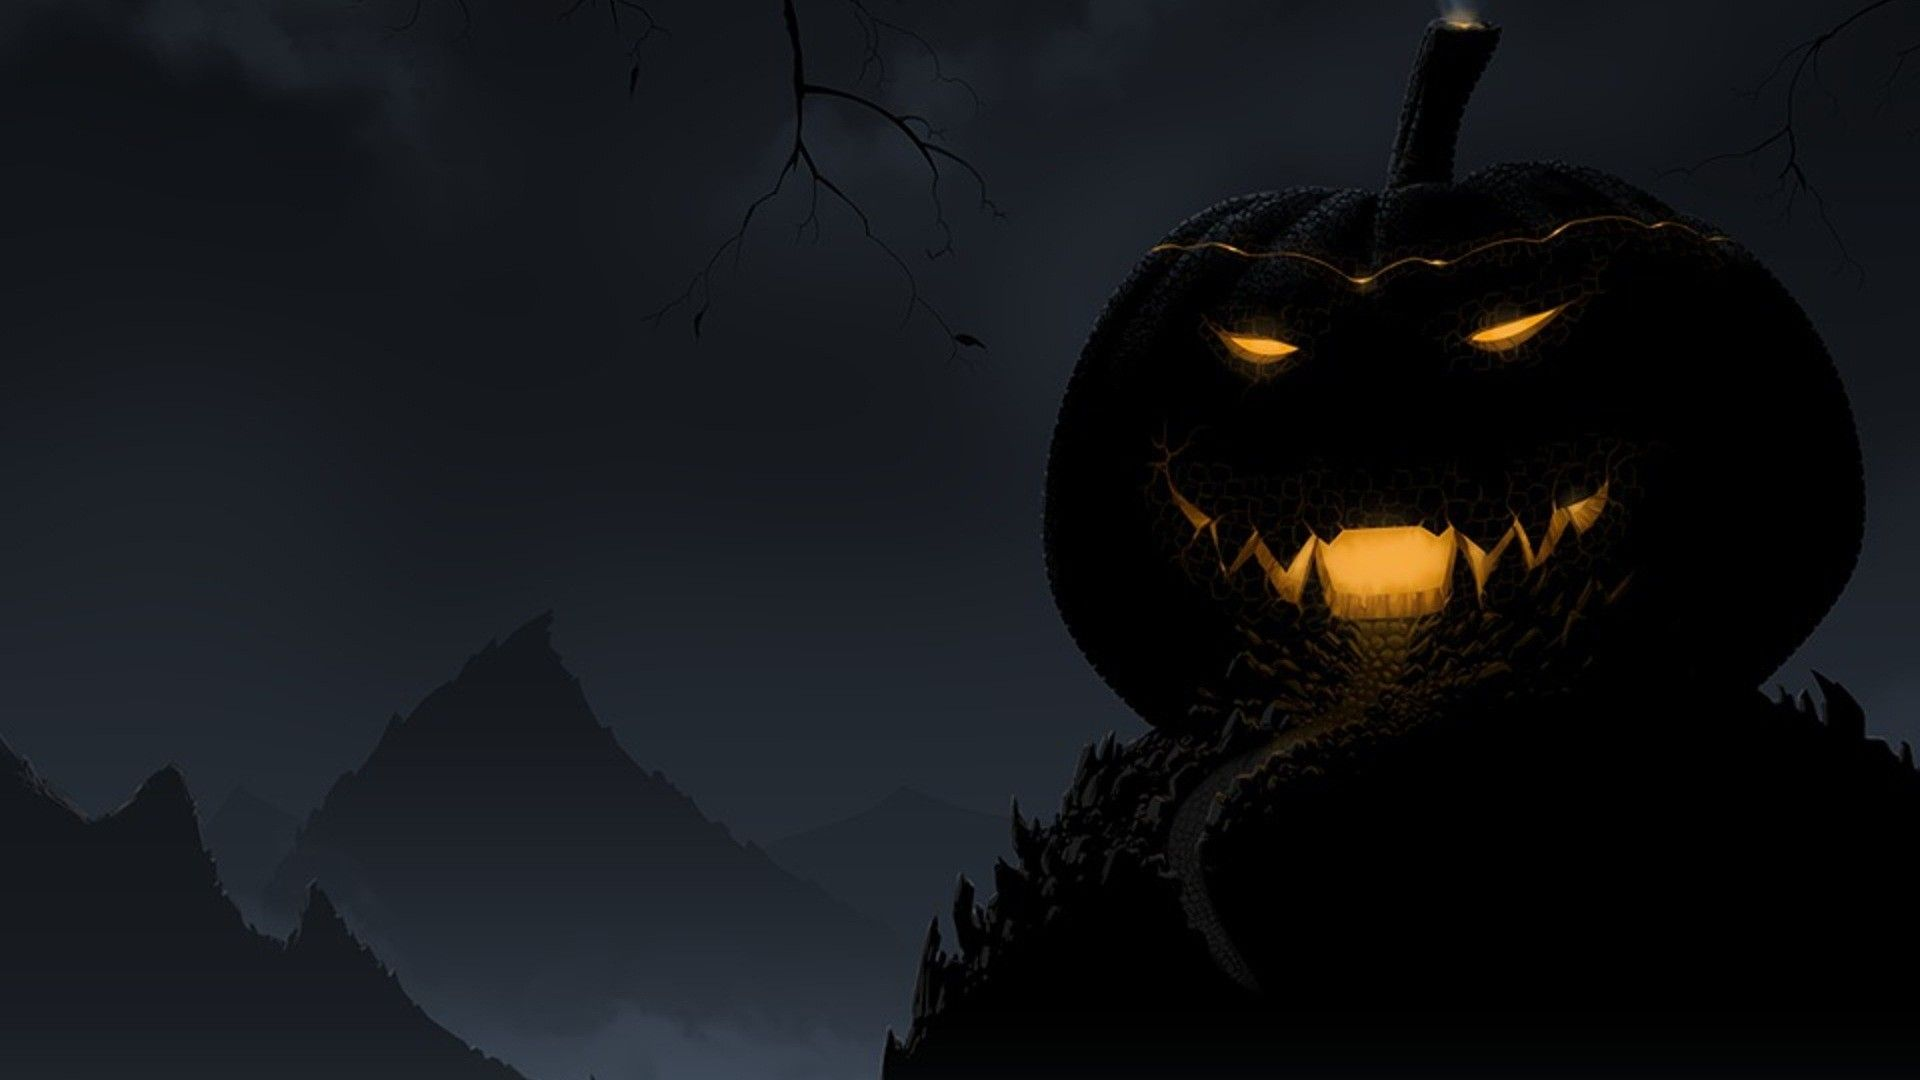 halloween wallpaper for android, halloween images for facebook